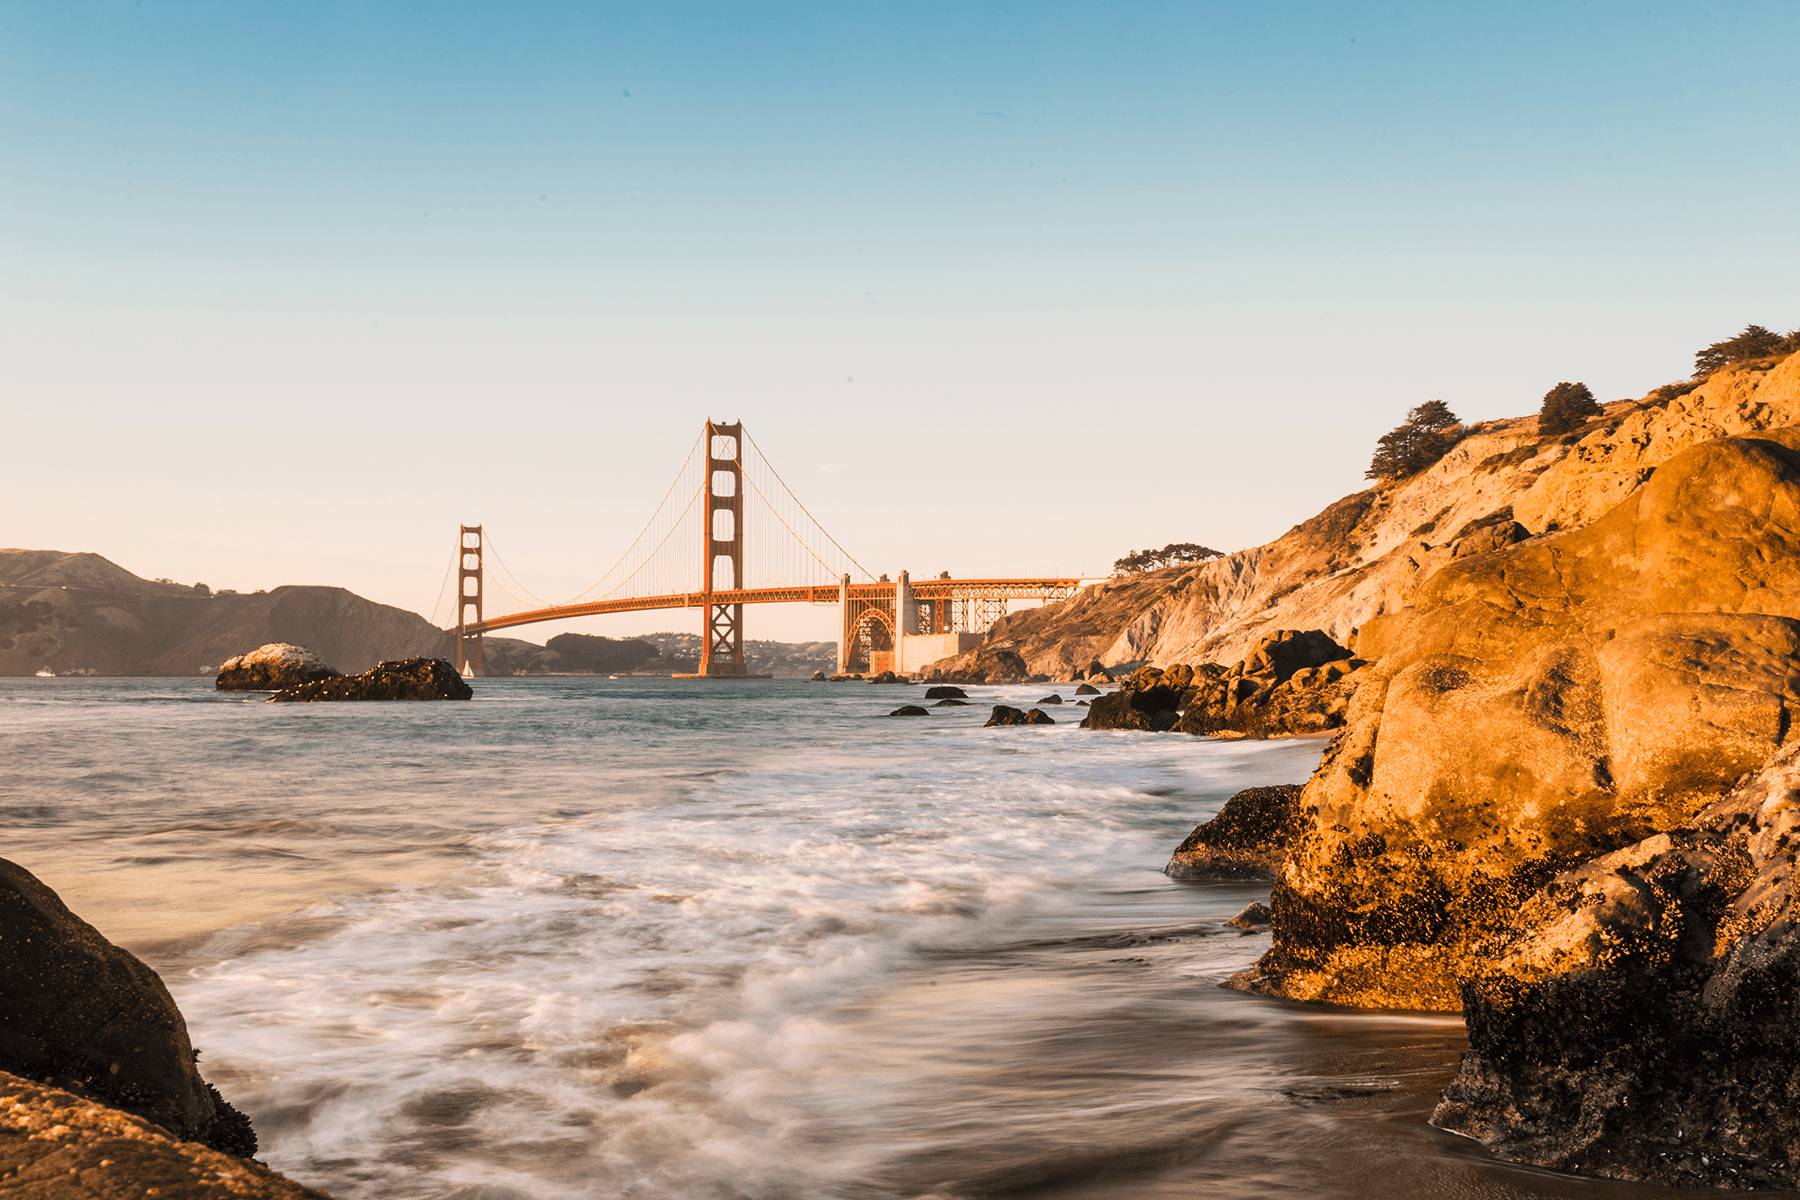 Wall Murals: Golden Gate Bridge of San Francisco